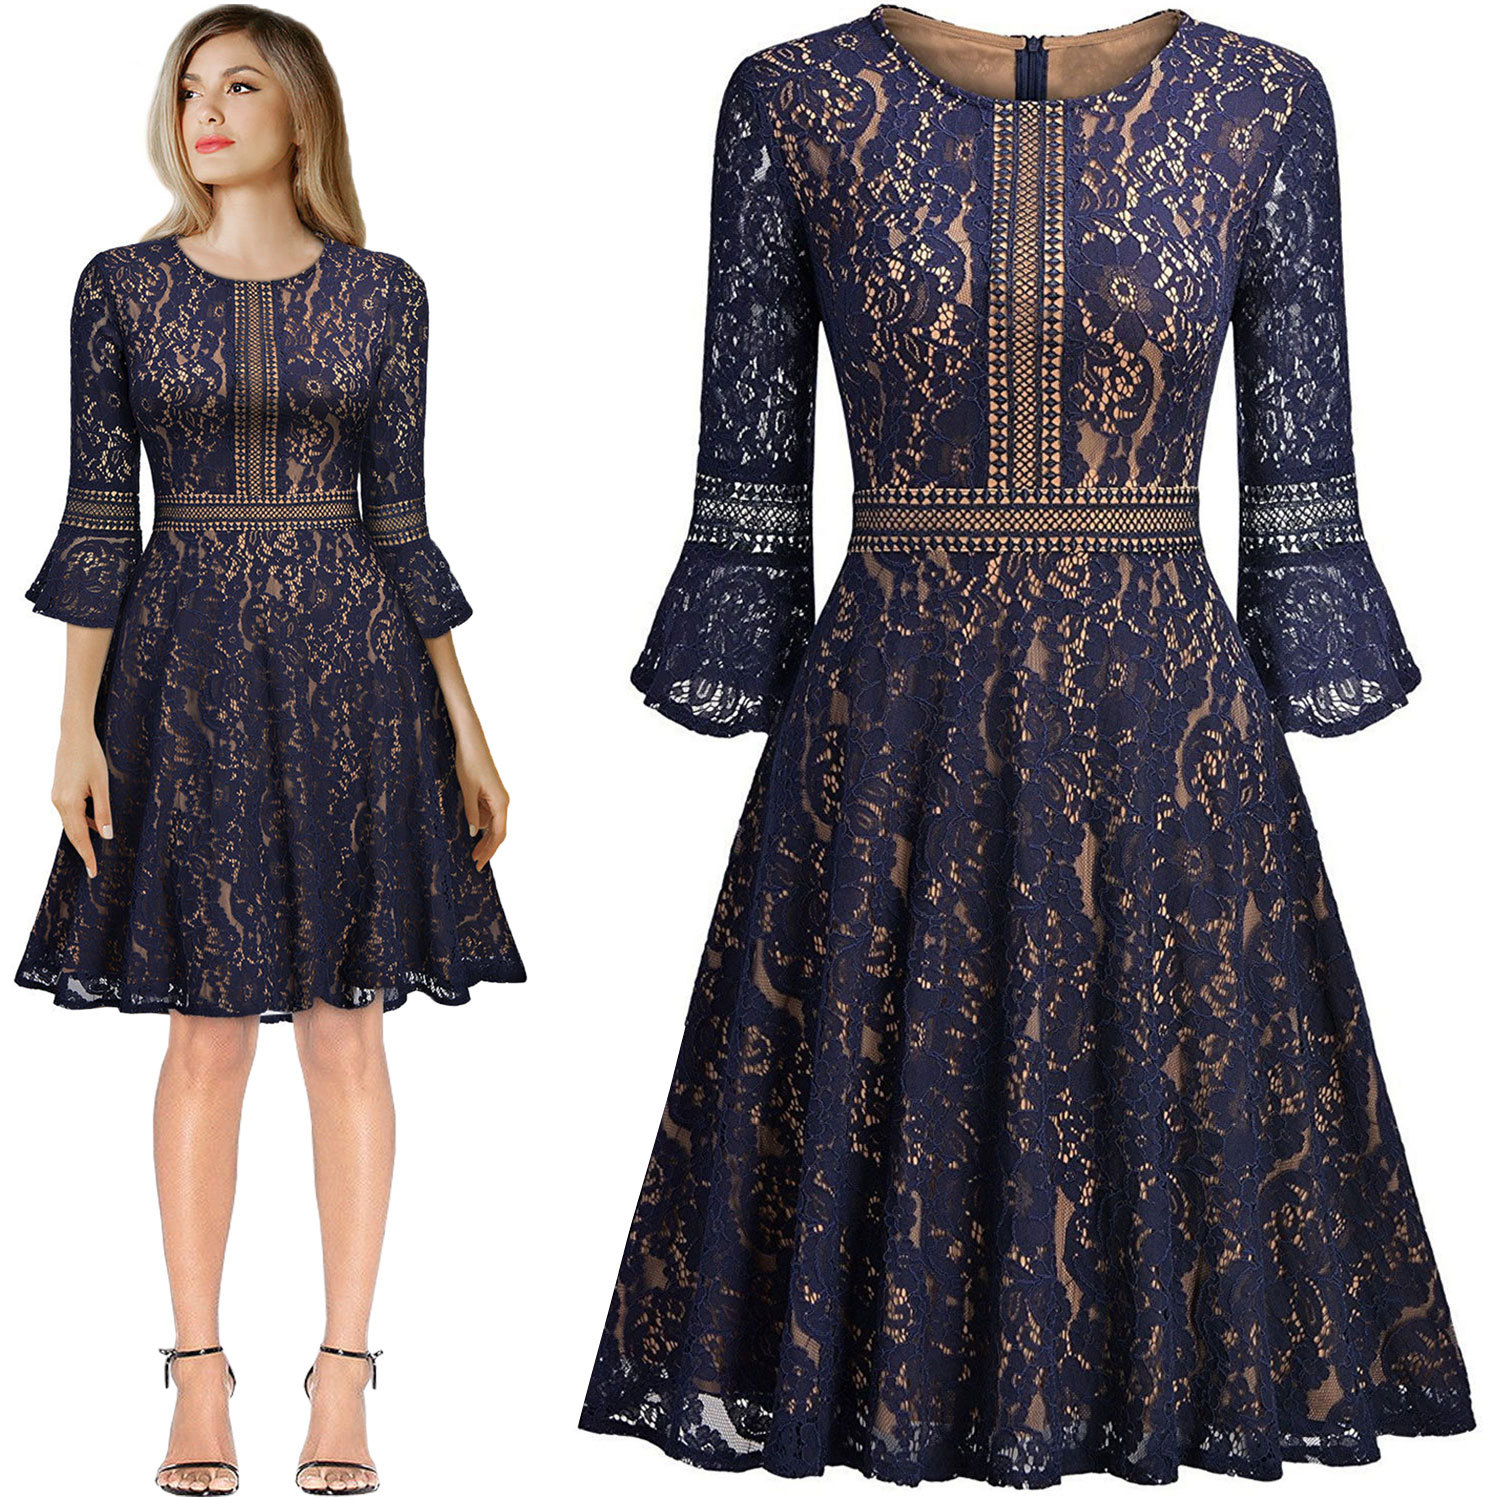 2019 Hot Sale Spring New European Style Lace Dress 3/4 Sleeve Elegant Flare Sleeve Big Pendulum Vintage Dress Free Shipping